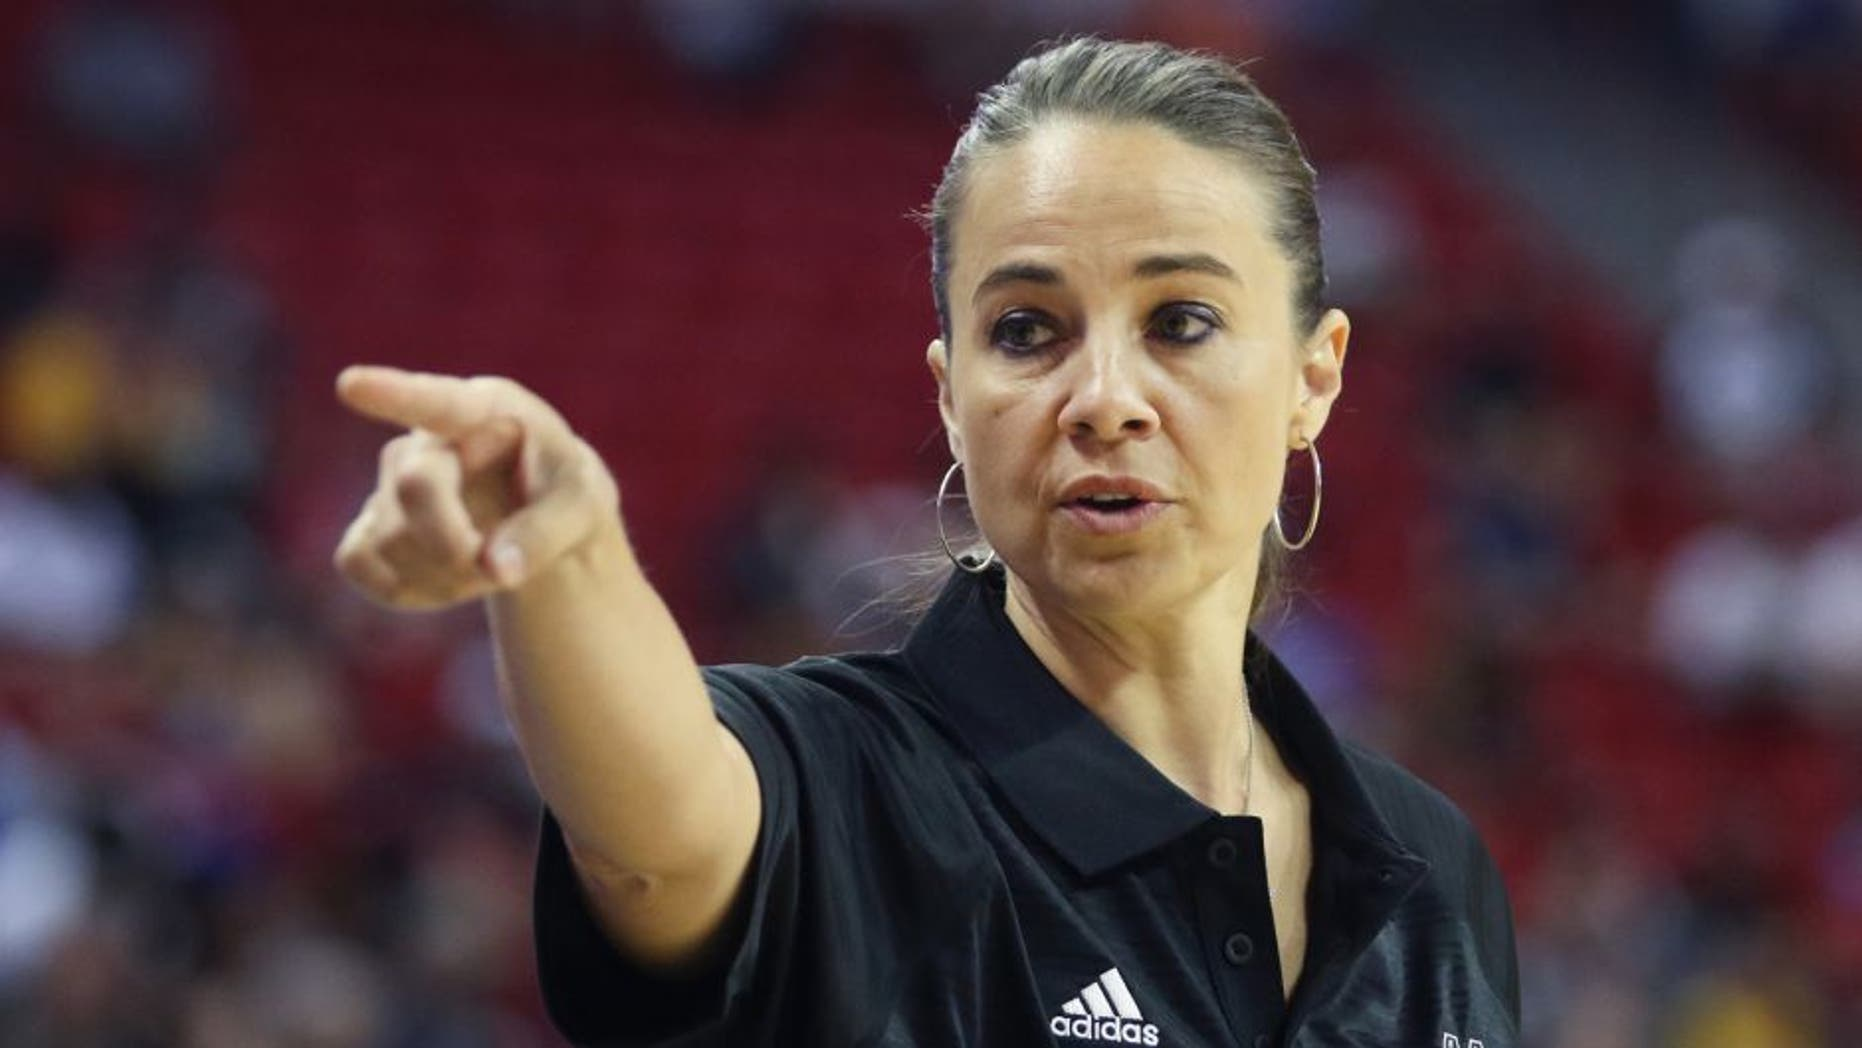 Becky Hammon coaches the San Antonio Spurs during an NBA summer league basketball game against the New York Knicks on Saturday, July 11, 2015, in Las Vegas. (AP Photo/Ronda Churchill)